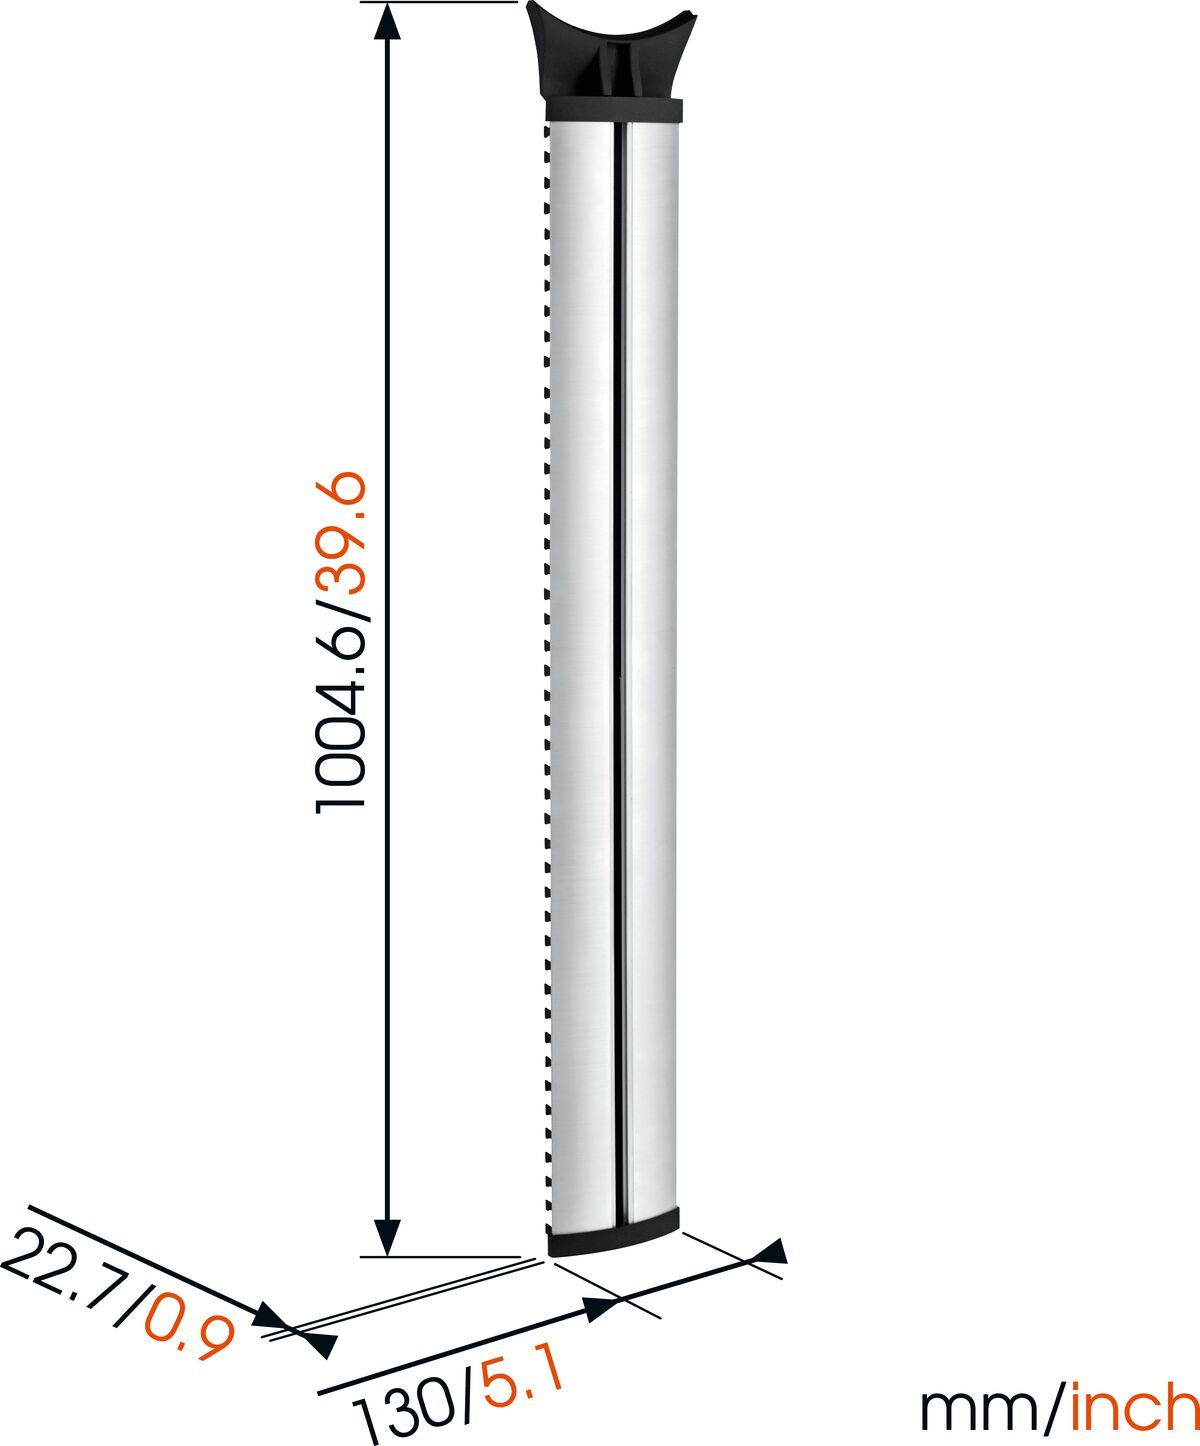 Vogel's NEXT 7840 Cable Column - Max. aantal kabels in kabelgoot: Tot 10 kabels - Lengte: 100 cm - Dimensions